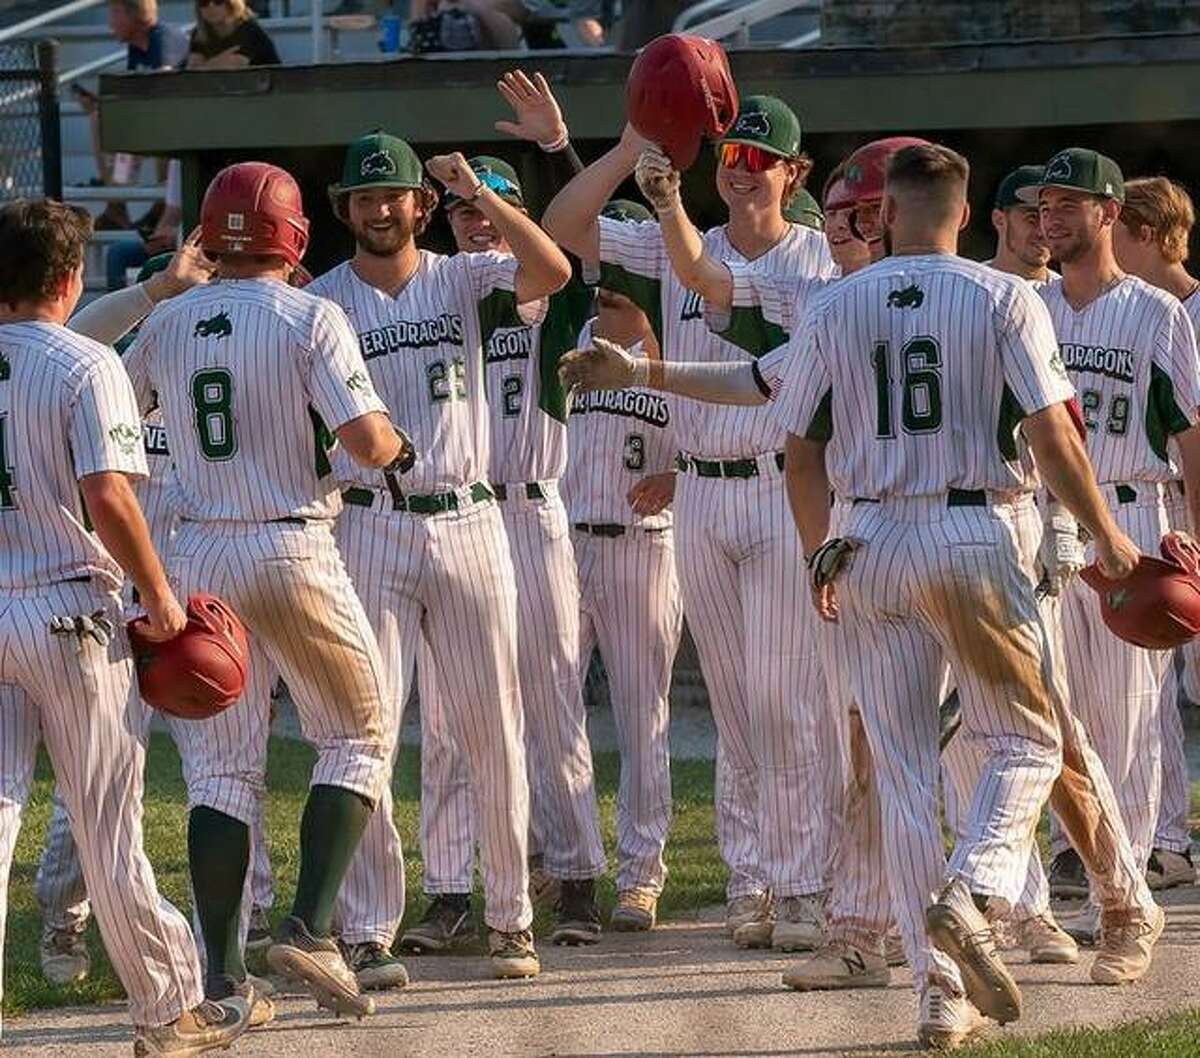 The Alton River Dragons celebrate as Brady Mutz returns to the dugout in a recent game. Mutz (8) had four hits, including a double, an RBI and scored twice in Alton's 12-0 win over the O'Fallon Hoots in the first game of a doubleheader Tuesday night at Lloyd Hopkins Field. O'Fallon won the second game 4-1.